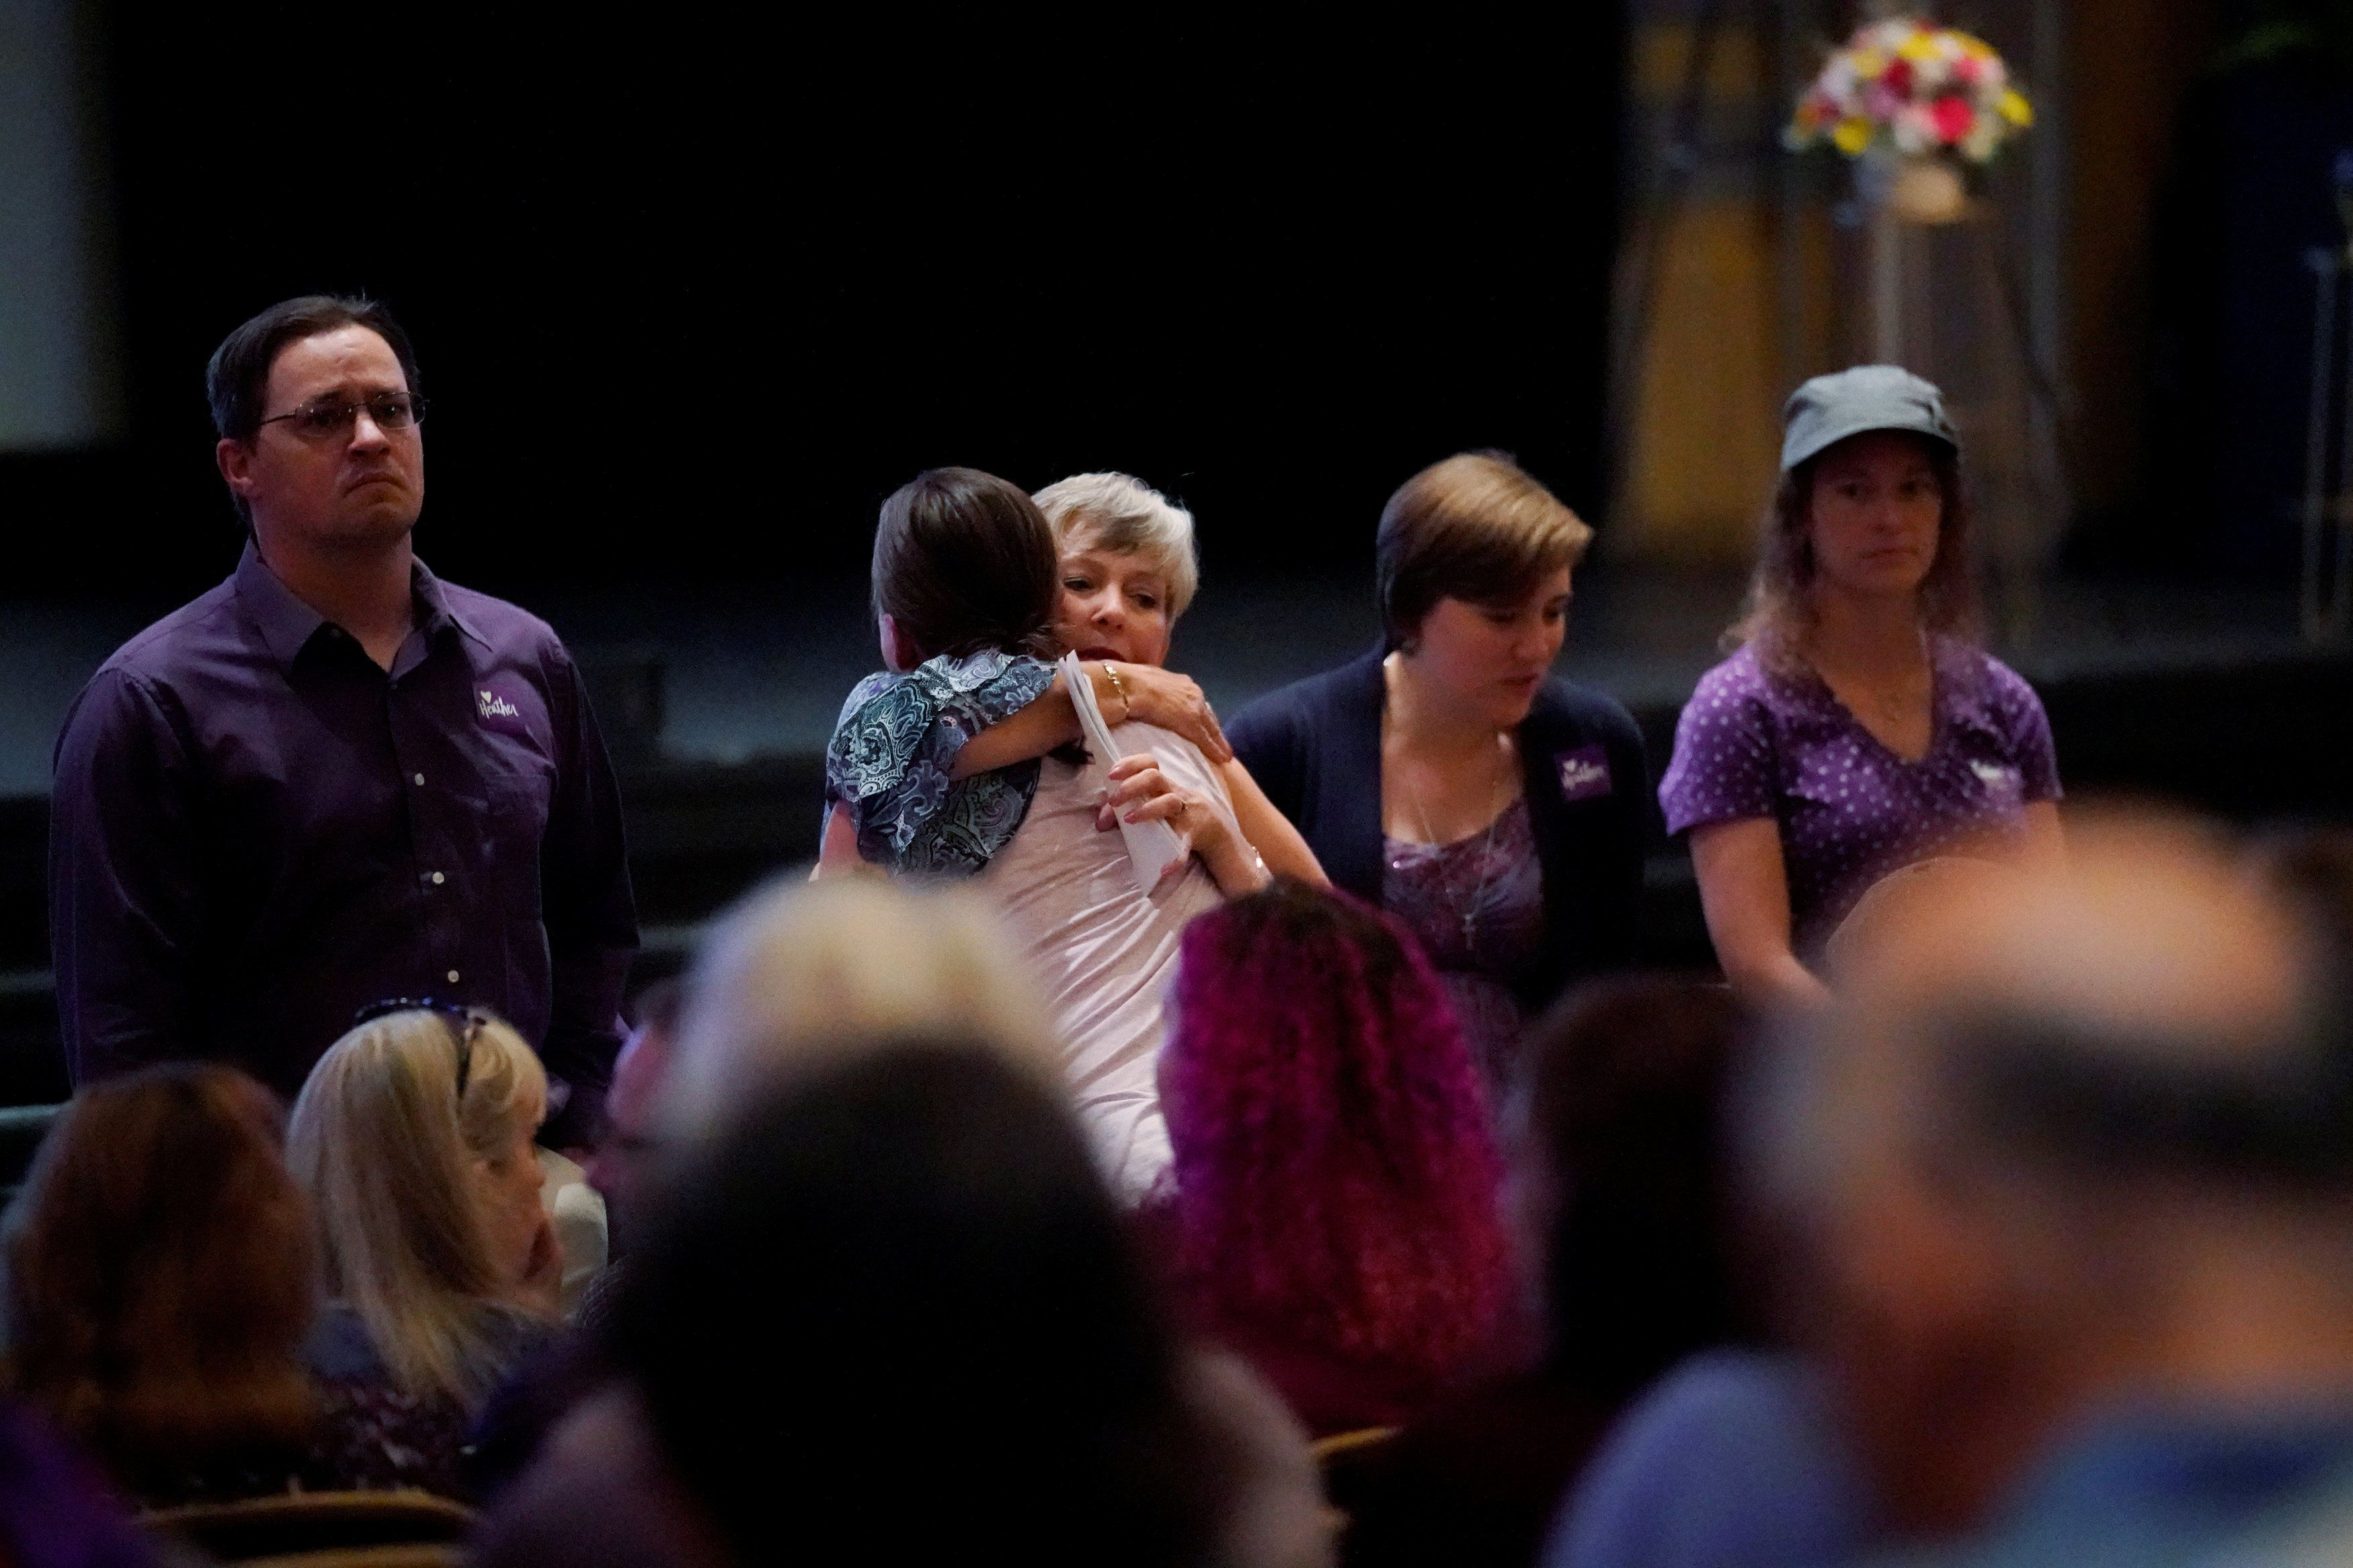 Mourners gather inside the Paramount Theater for a memorial service for Heather